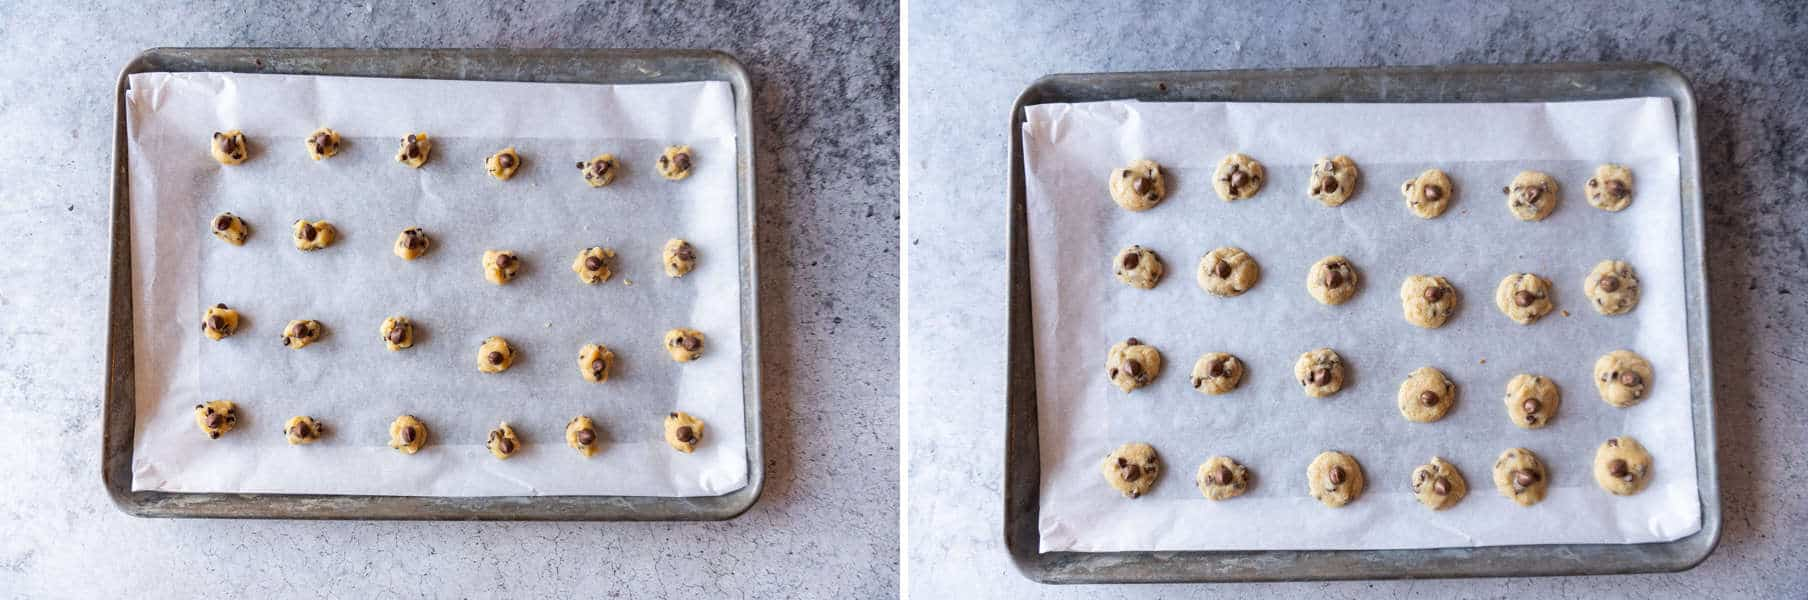 before and after baking mini chocolate chip cookies